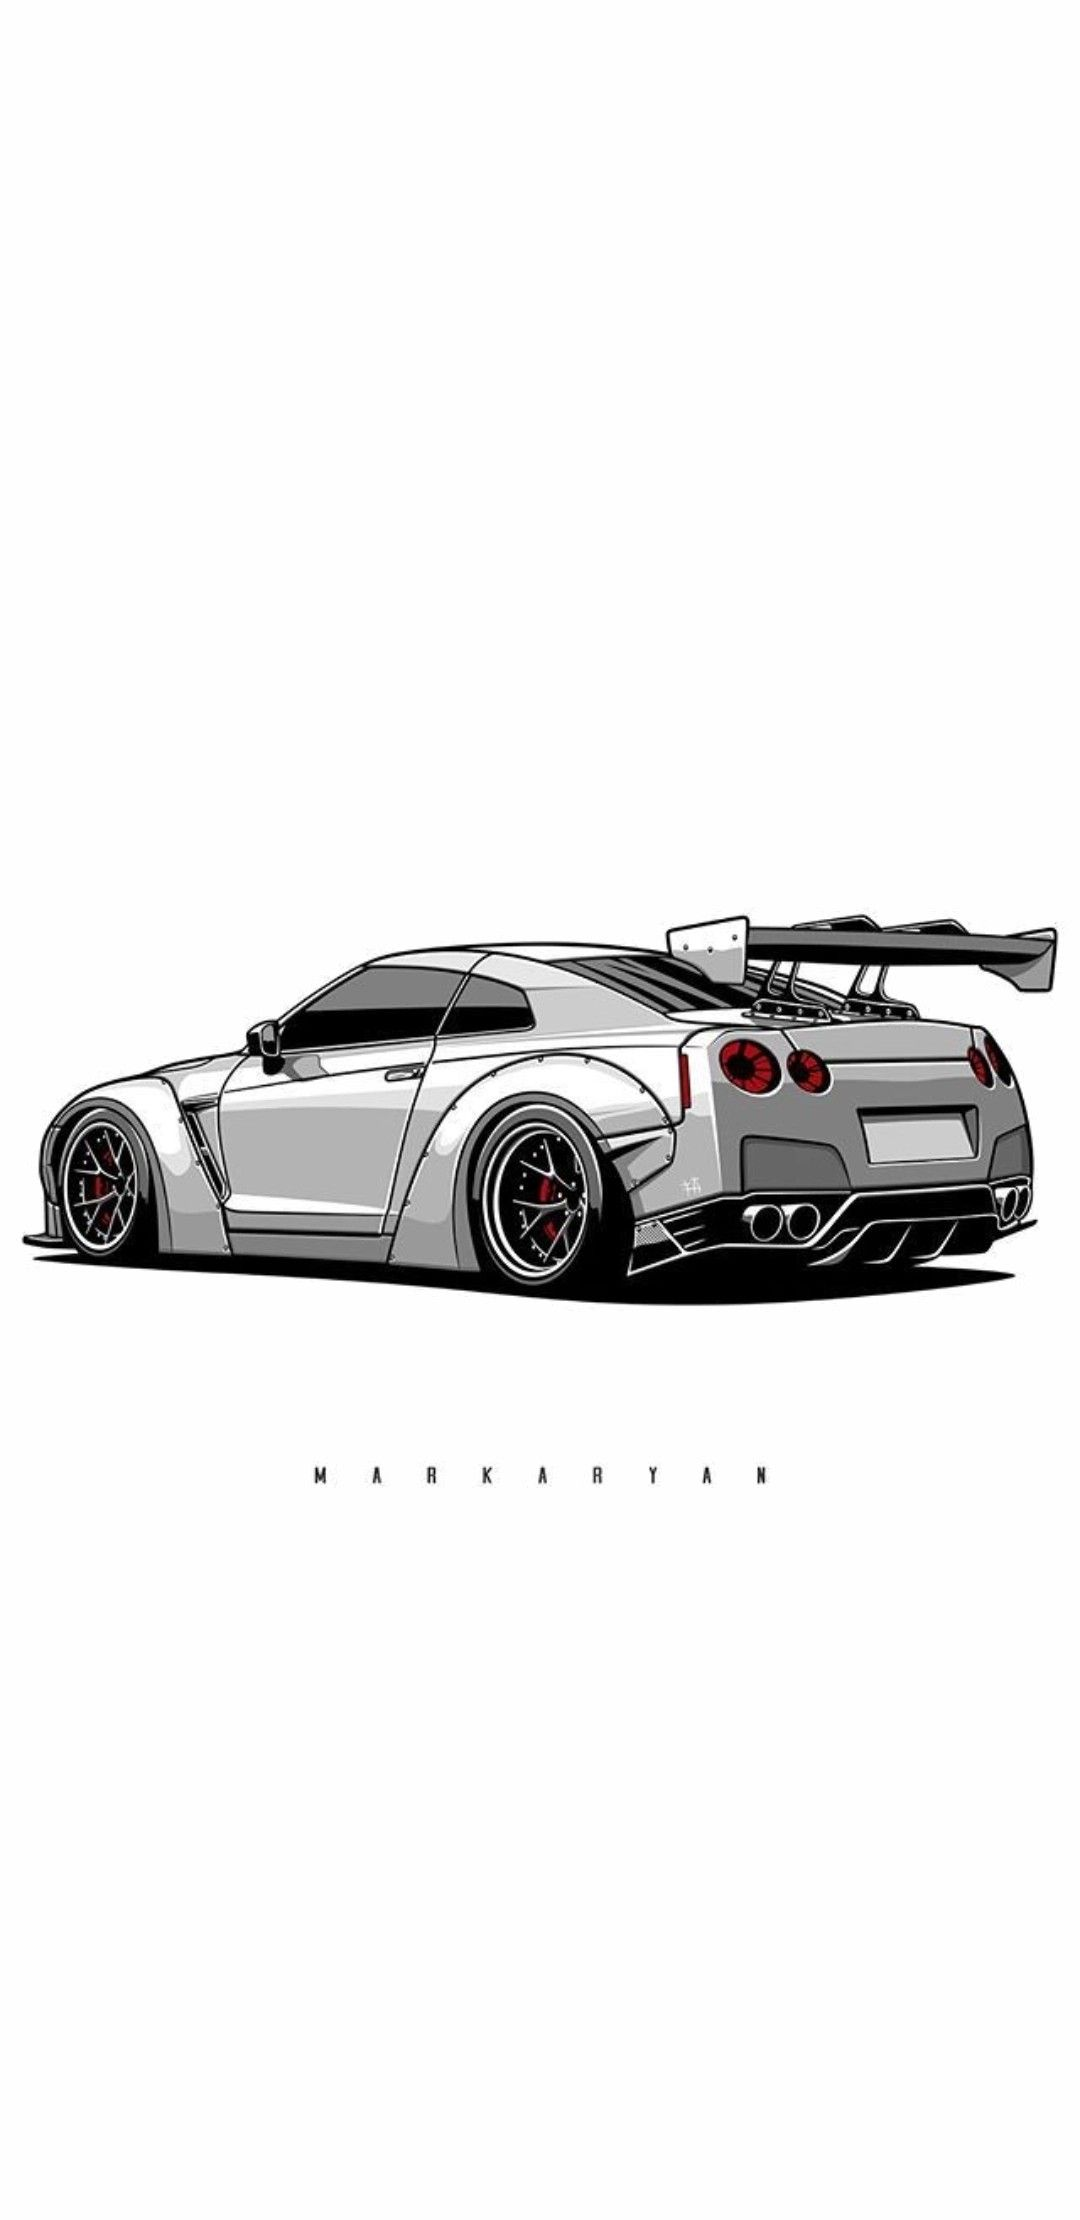 Collection of drawings and paintings wallpaper in 4k, 5k and mobile resolutions. Nissan Gt R Drawing Car Wallpapers Car Drawings Art Cars